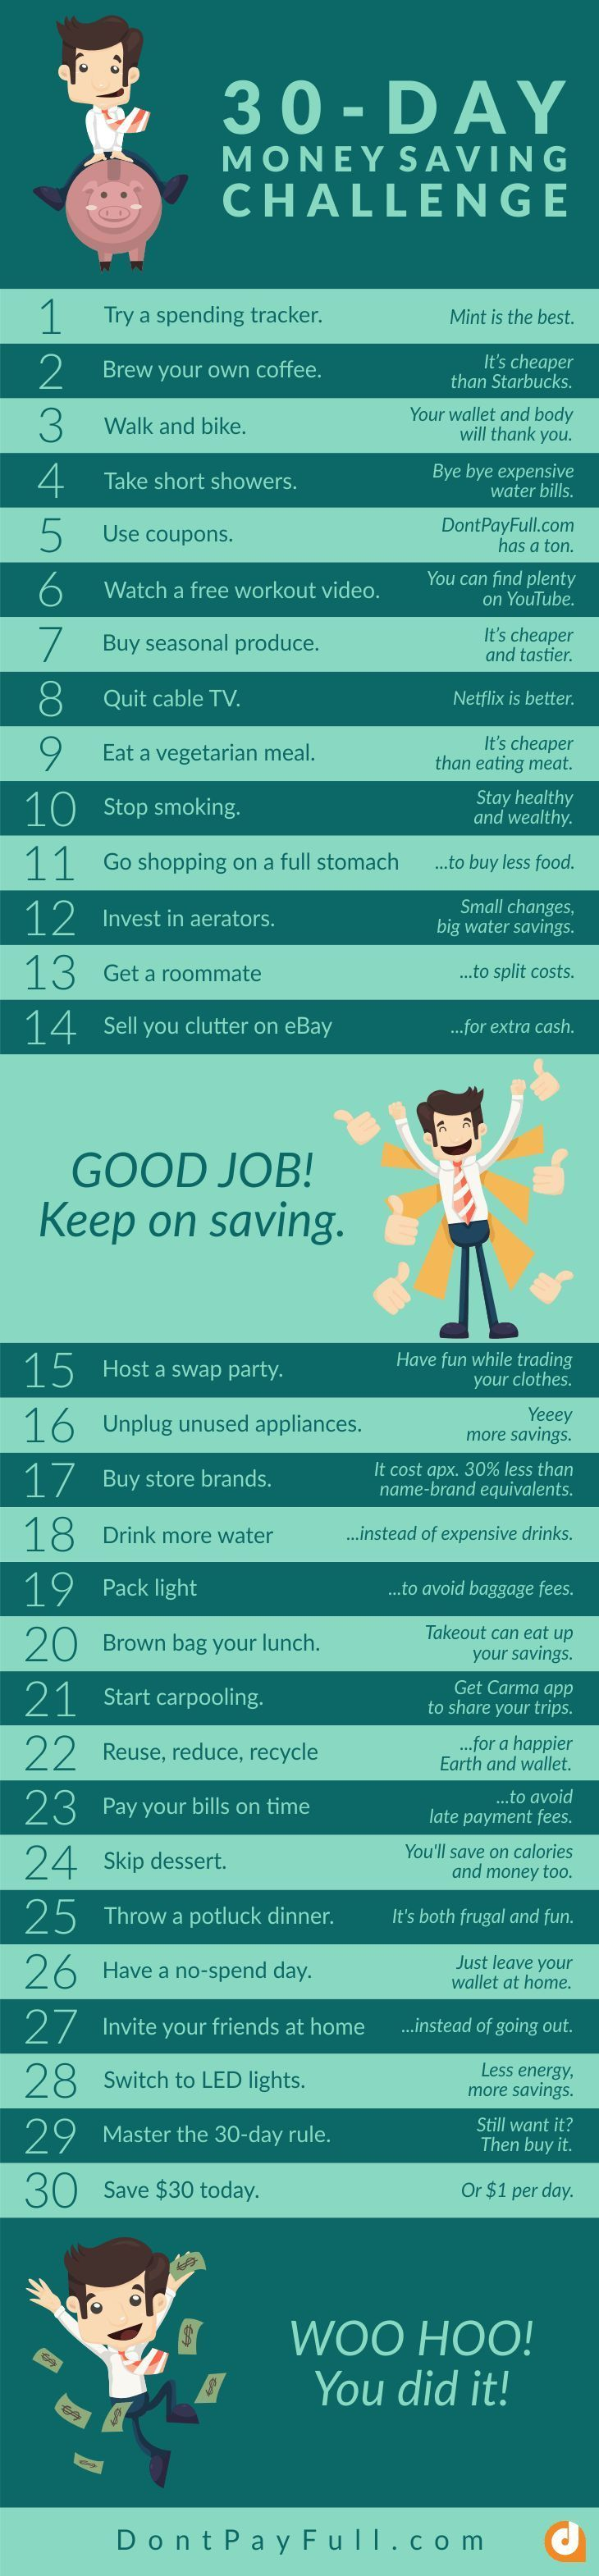 30-Day Money Saving Challenge